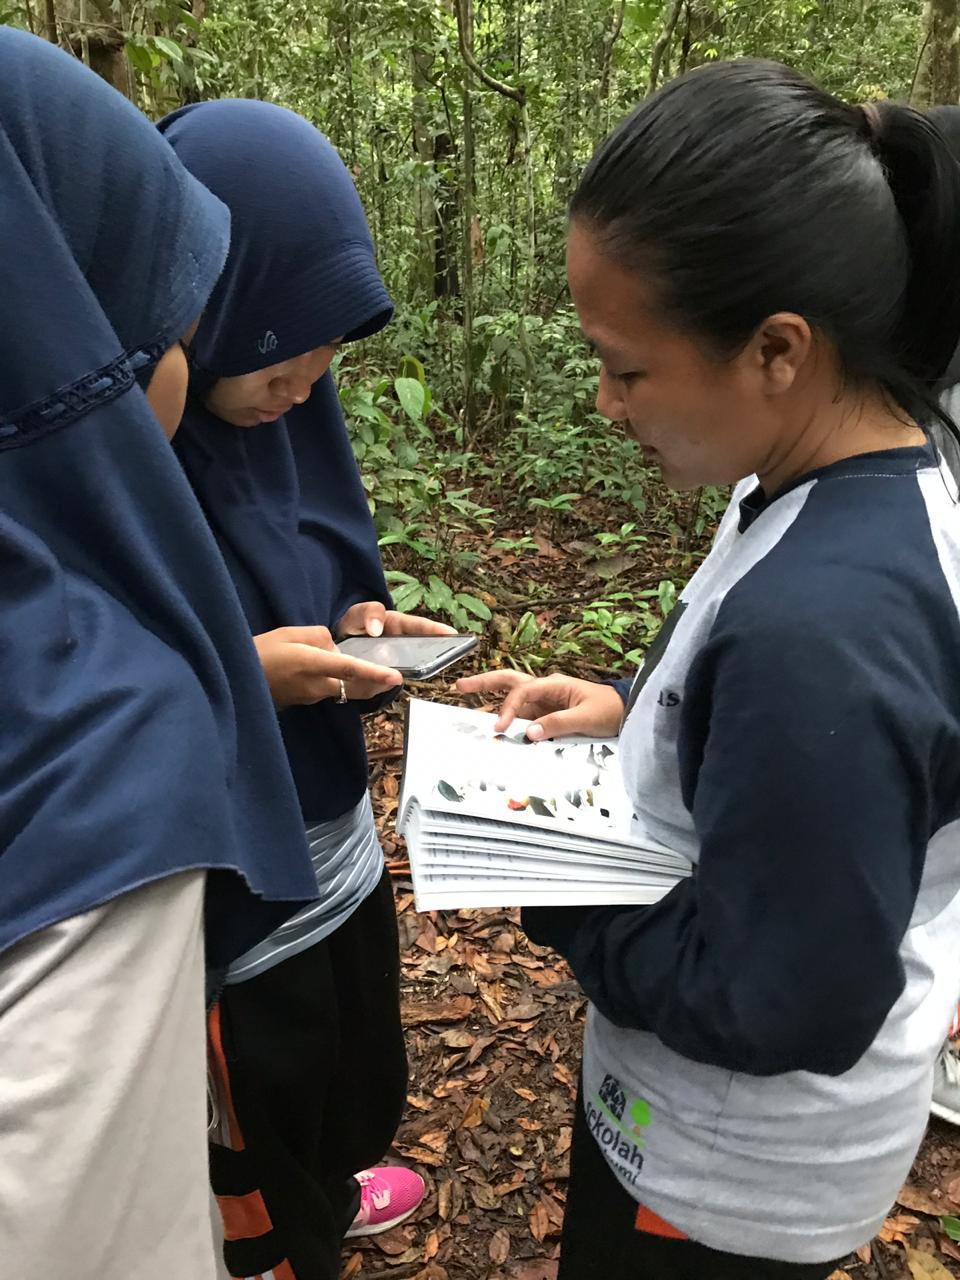 Local high school students using traditional and new ways to identify species.